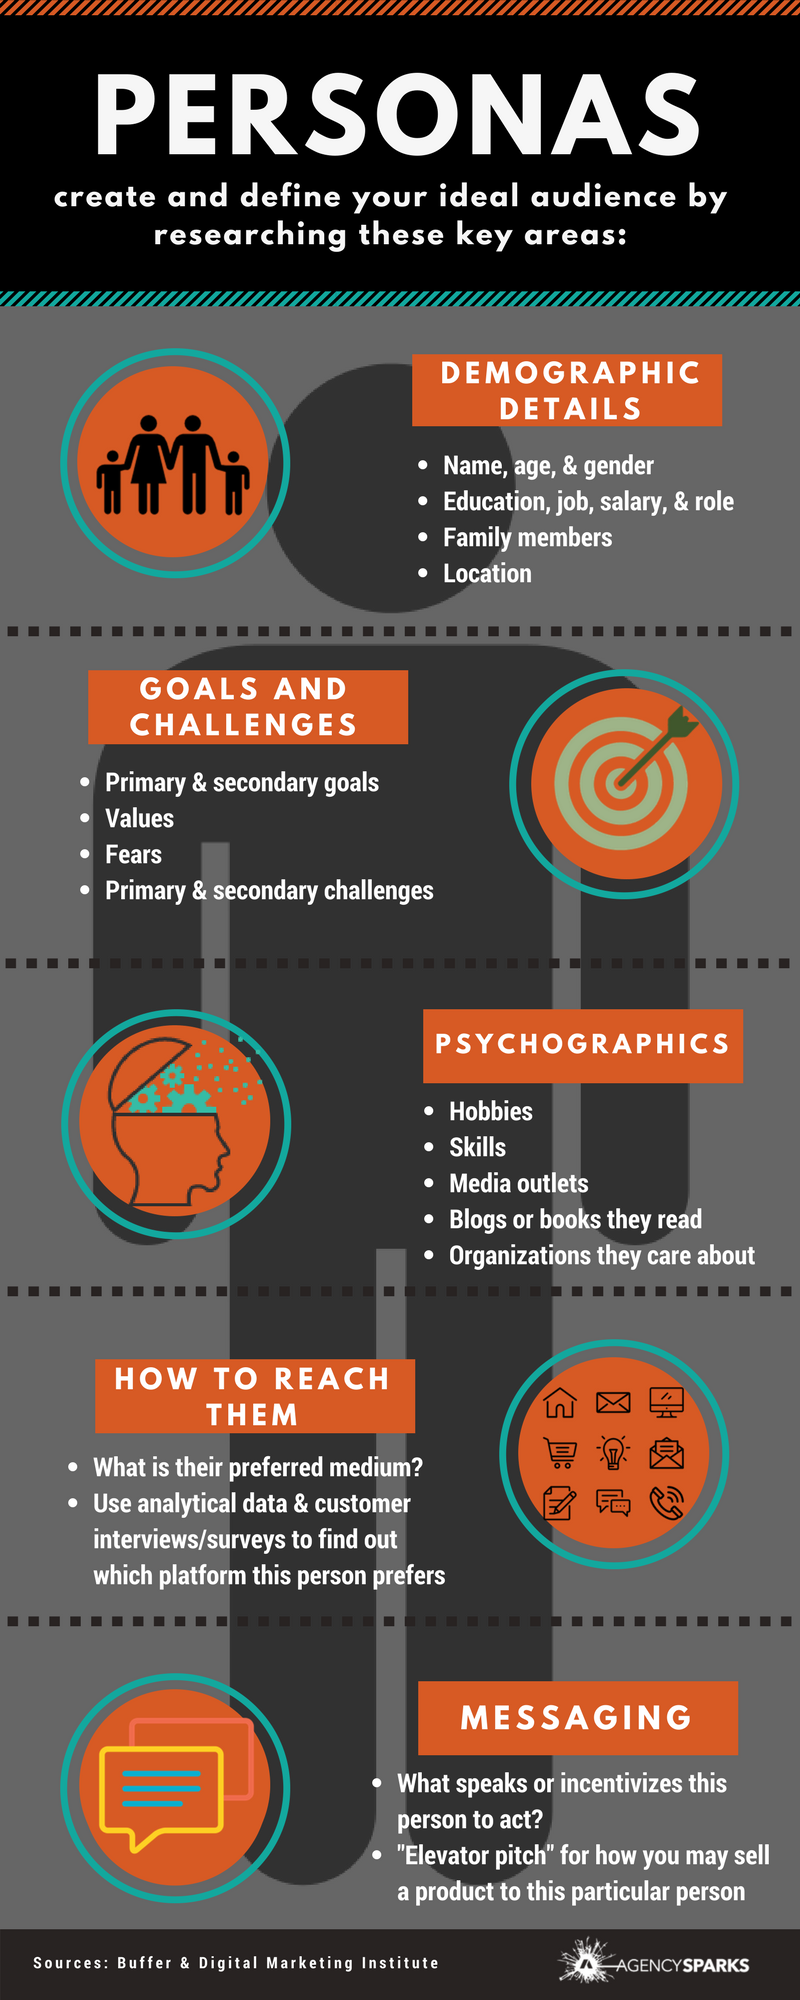 Creating and defining your ideal target audience in marketing starts with creating personas. You start creating personas by researching areas like demographic details of your target audience, the goals and challenges of your target audience, the psychographics of your target audience, and how to reach your target audience.